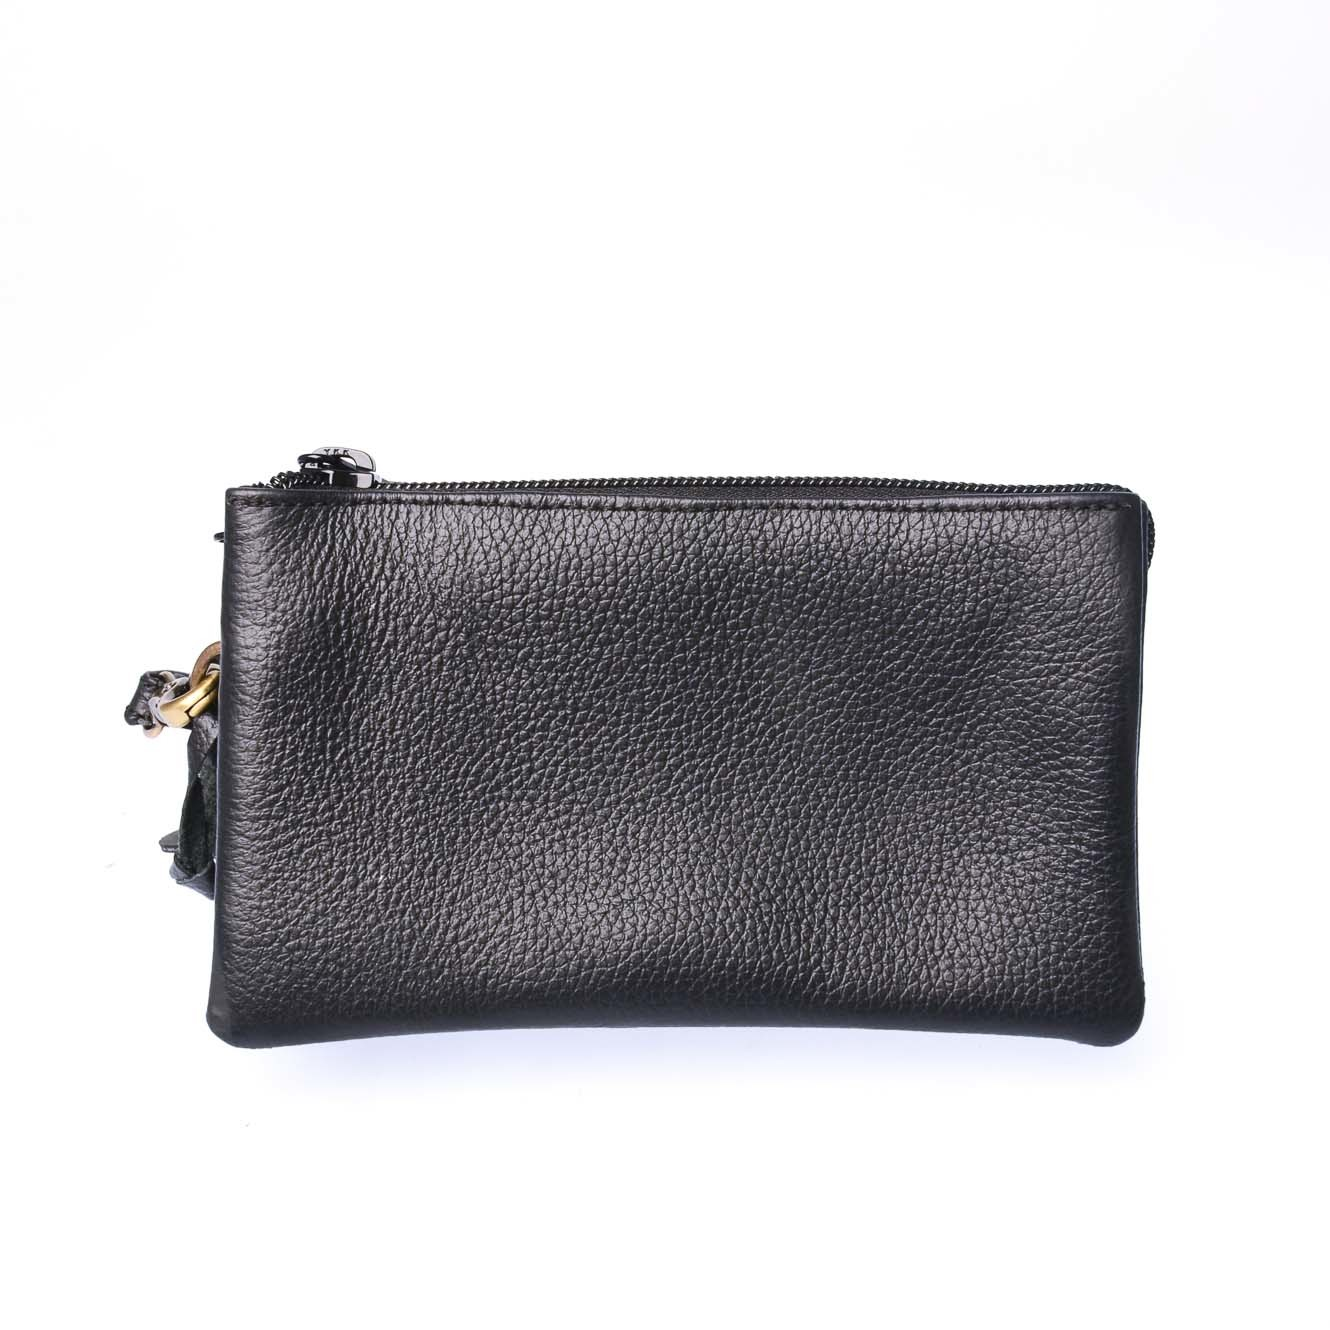 Our Tribe Women's Leather Pouch -Pouch Z